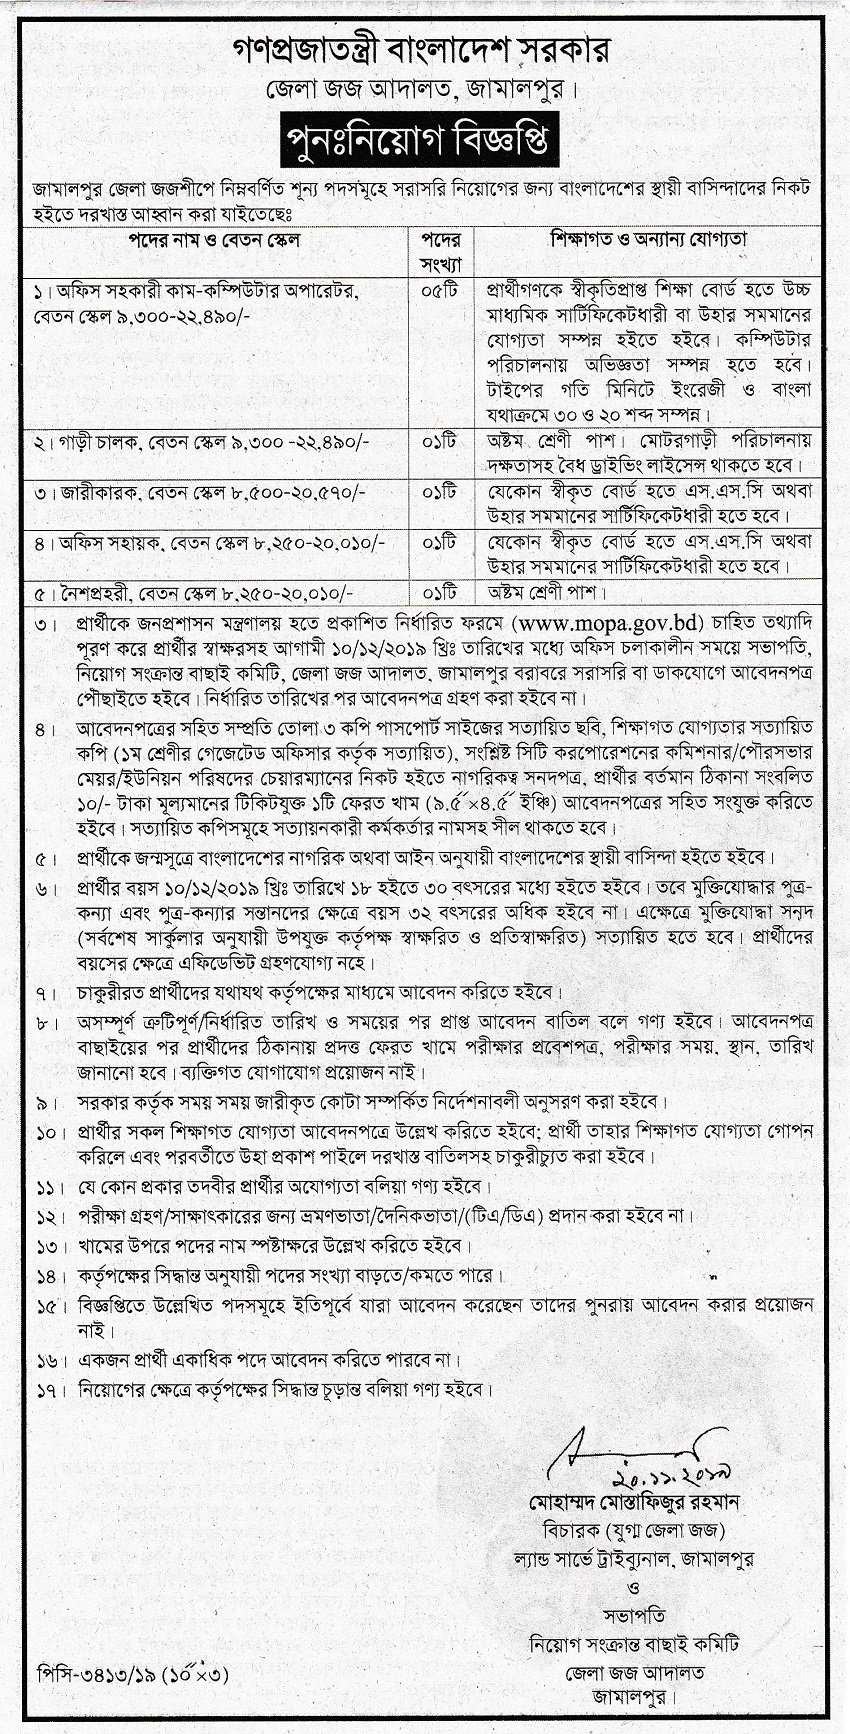 District Judge Court Office Job Circular 2019